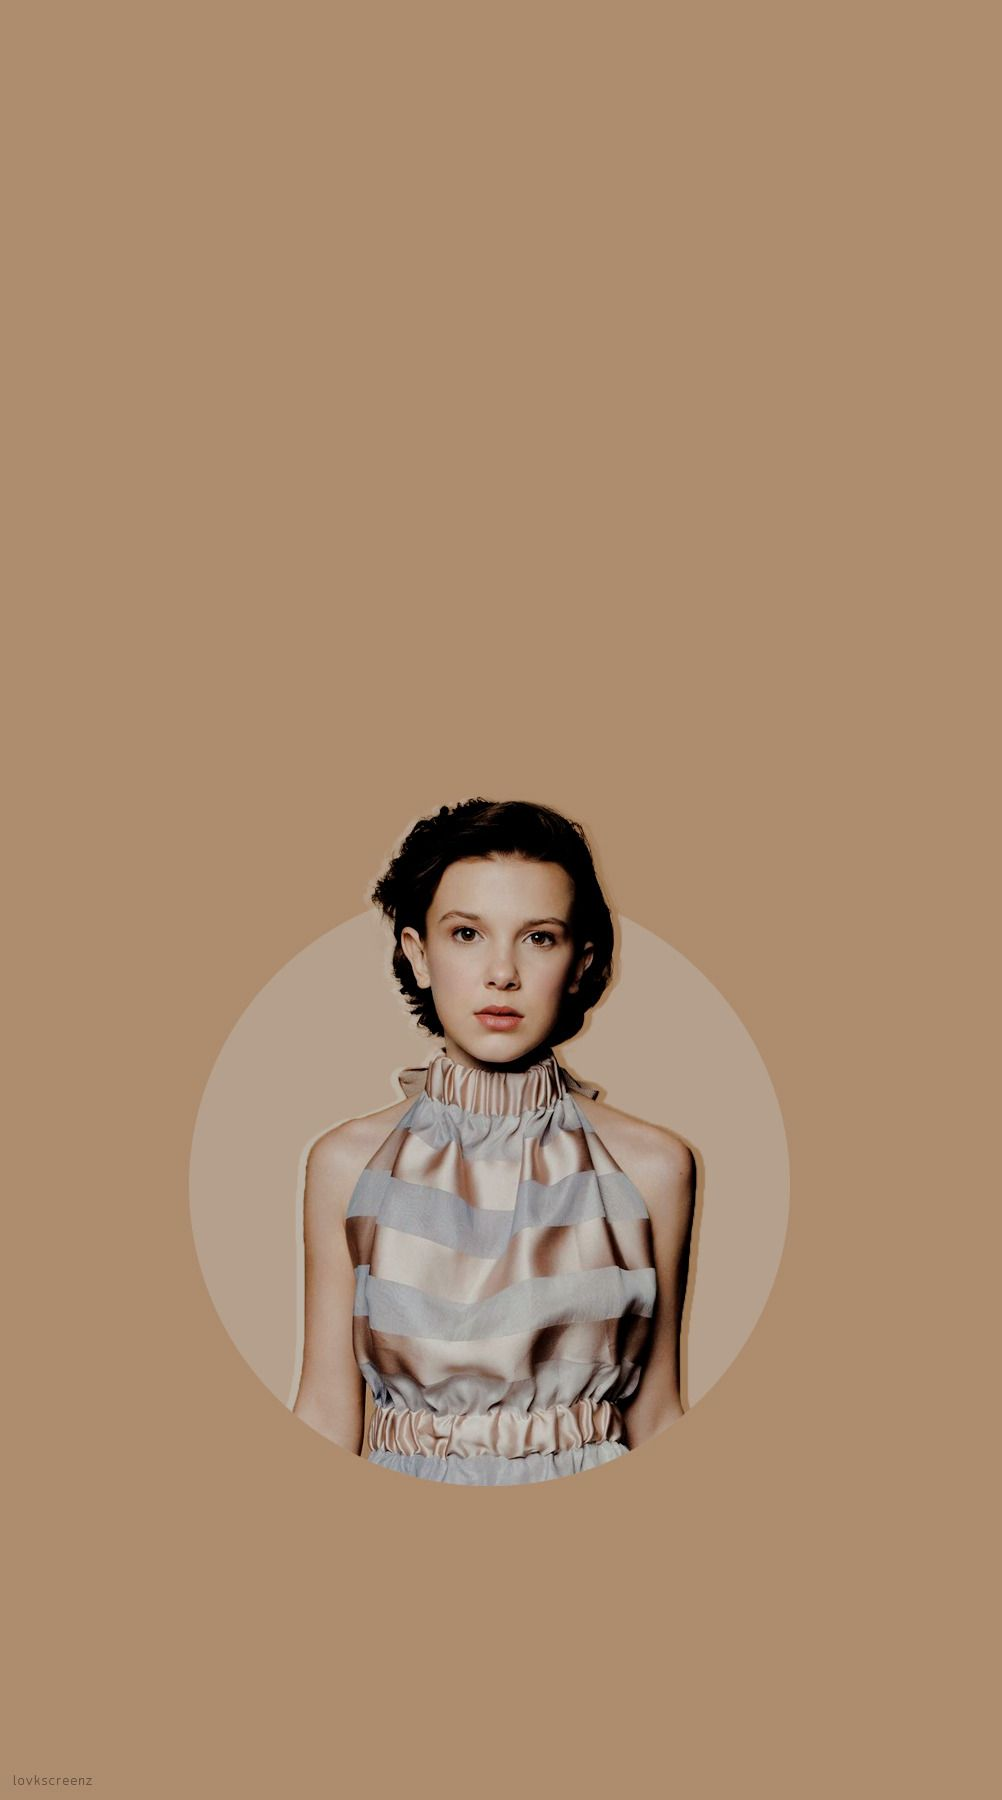 Millie Bobby Brown Wallpapers Tumblr Bobby Brown Millie Bobby Brown Brown Wallpaper